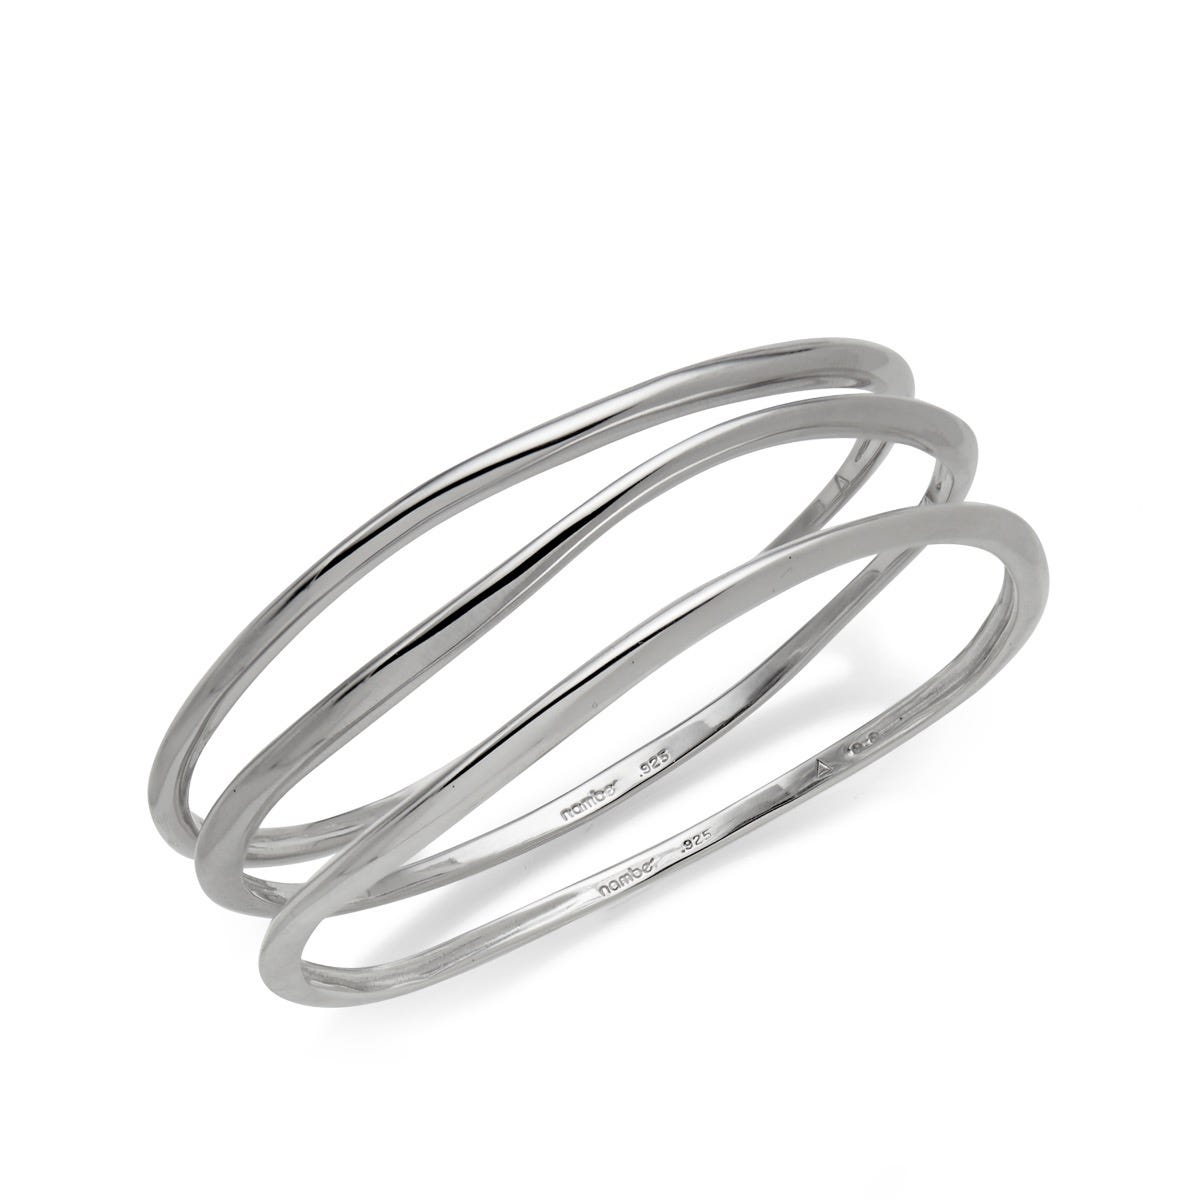 Signature Stackable Bangle Bracelets (Set of 3) in Sterling Silver